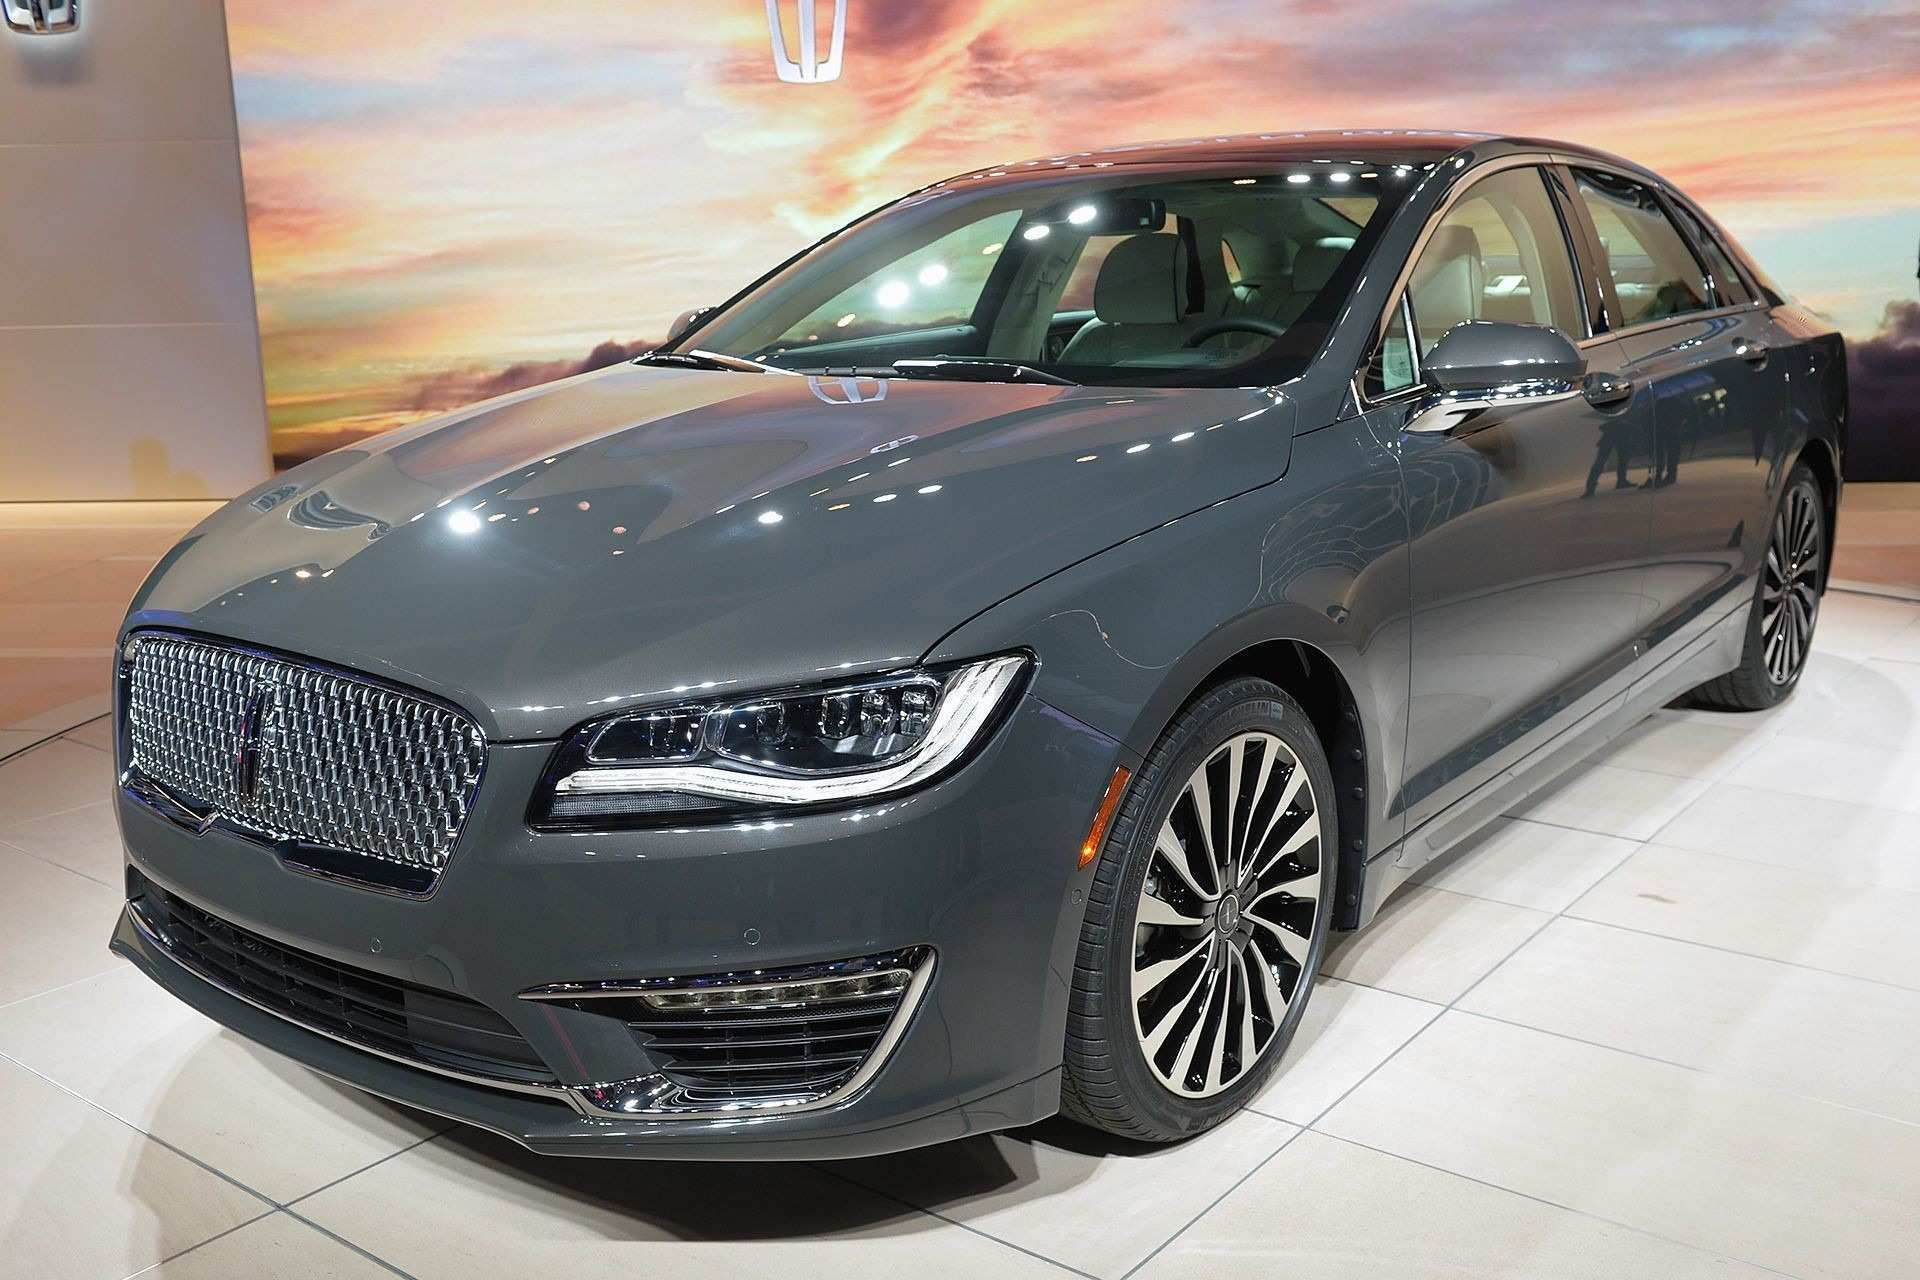 35 Gallery of 2020 Spy Shots Lincoln Mkz Sedan Concept by 2020 Spy Shots Lincoln Mkz Sedan